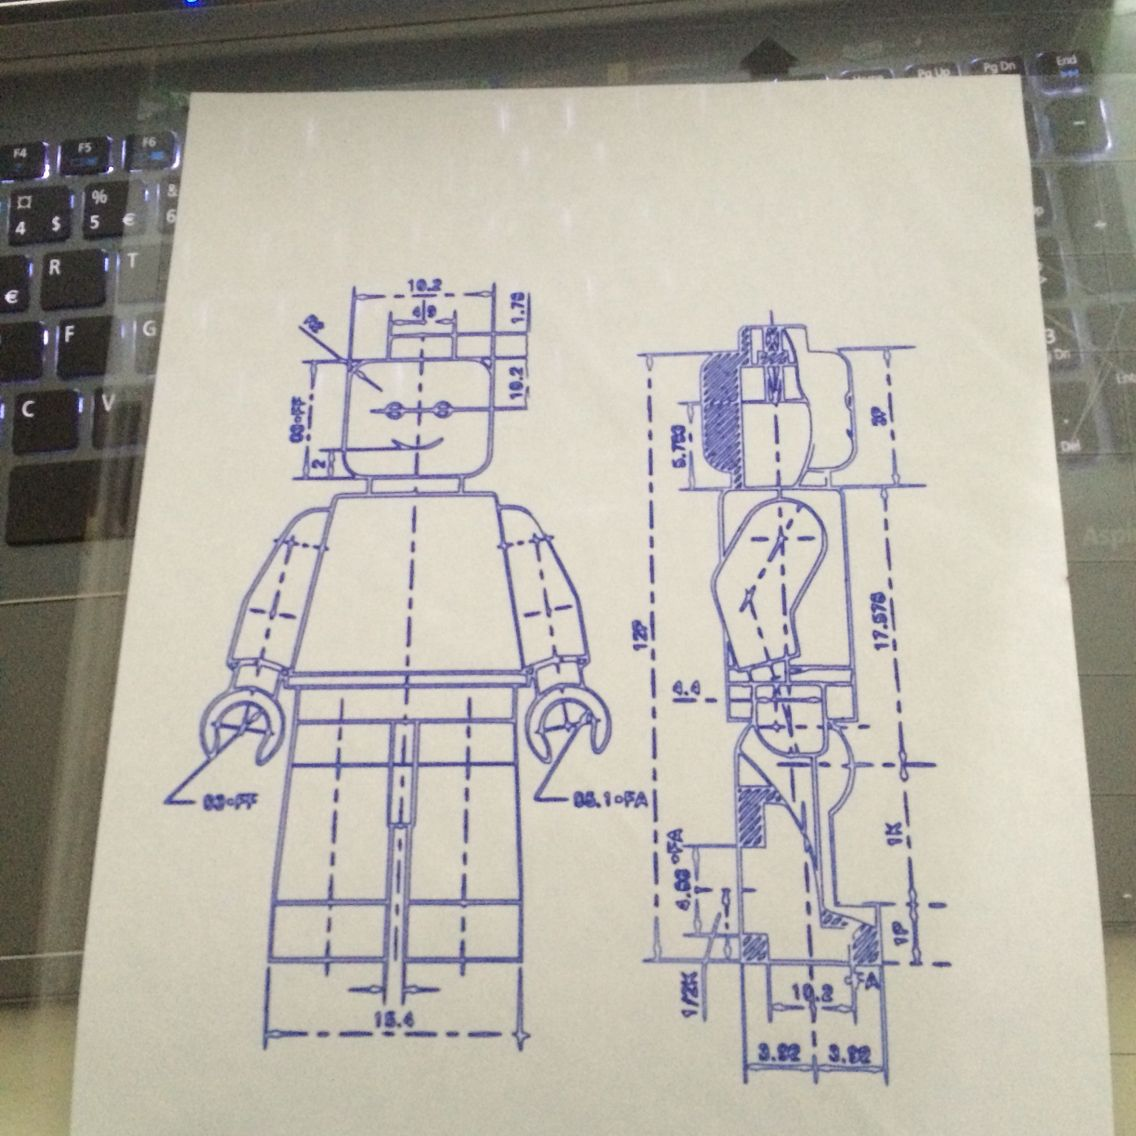 Printed with silhouette cameo lego blueprint blueprints printed with silhouette cameo lego blueprint malvernweather Gallery